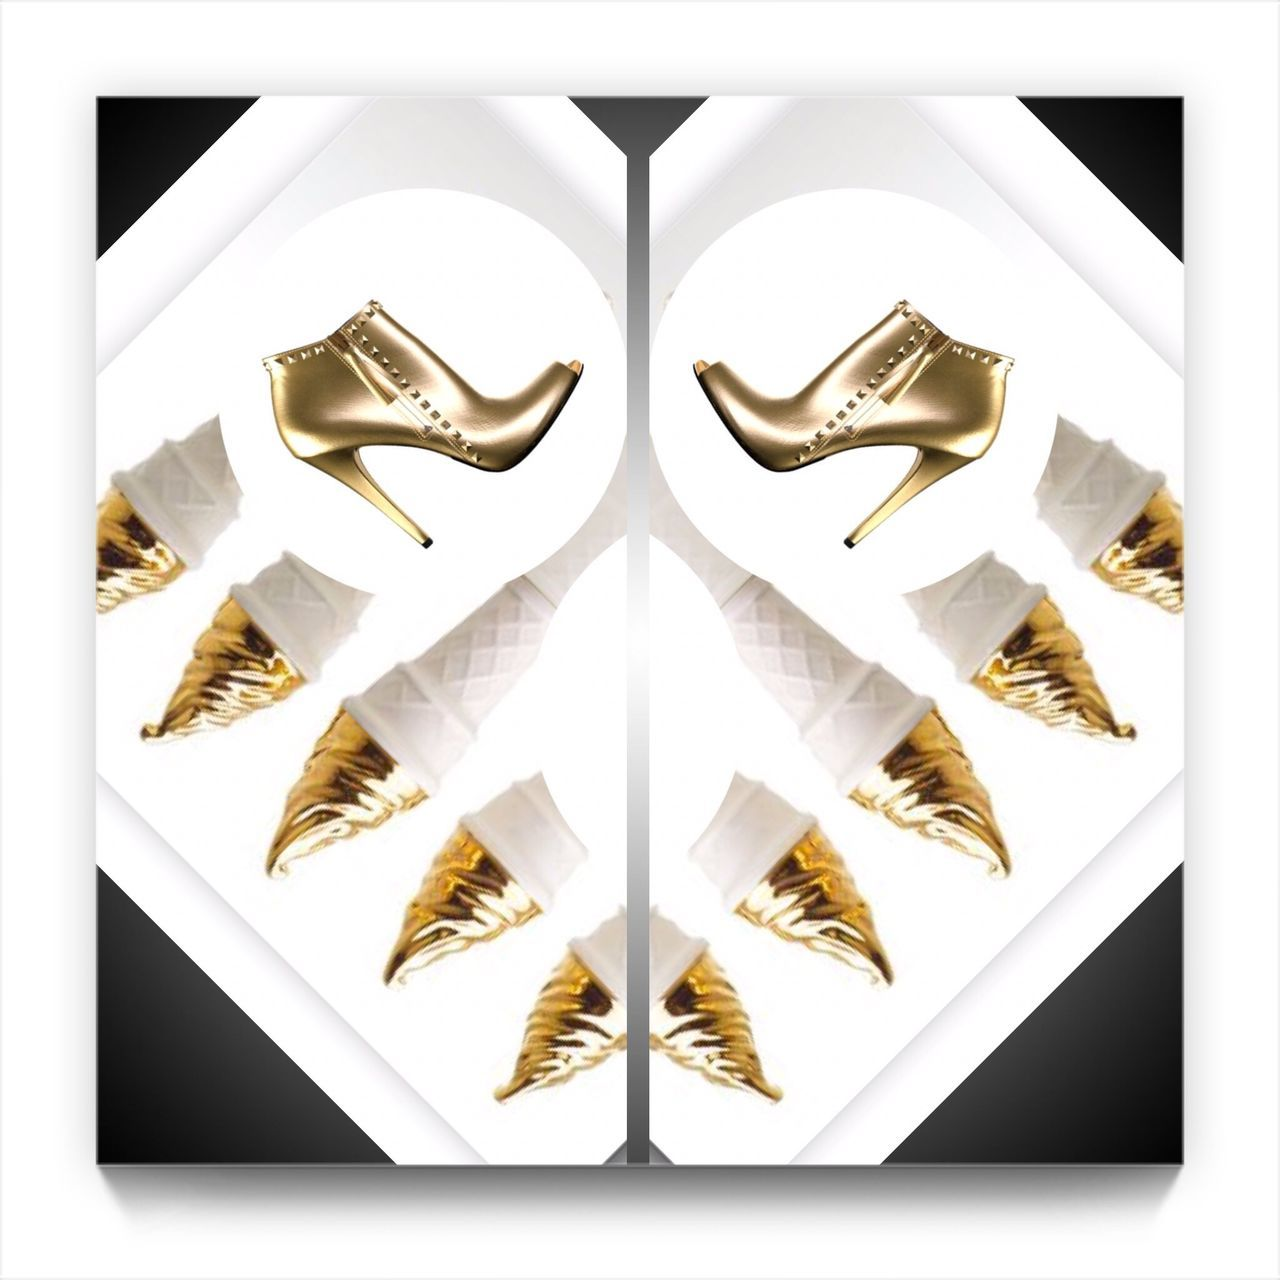 Fashion Design Fashion Photography Fashion Designer  Day Design Shoe Shoes Luxury White Background Picture Frame Digital Composite Composite Image Collage Gold Colored No People Multiple Image Close-up